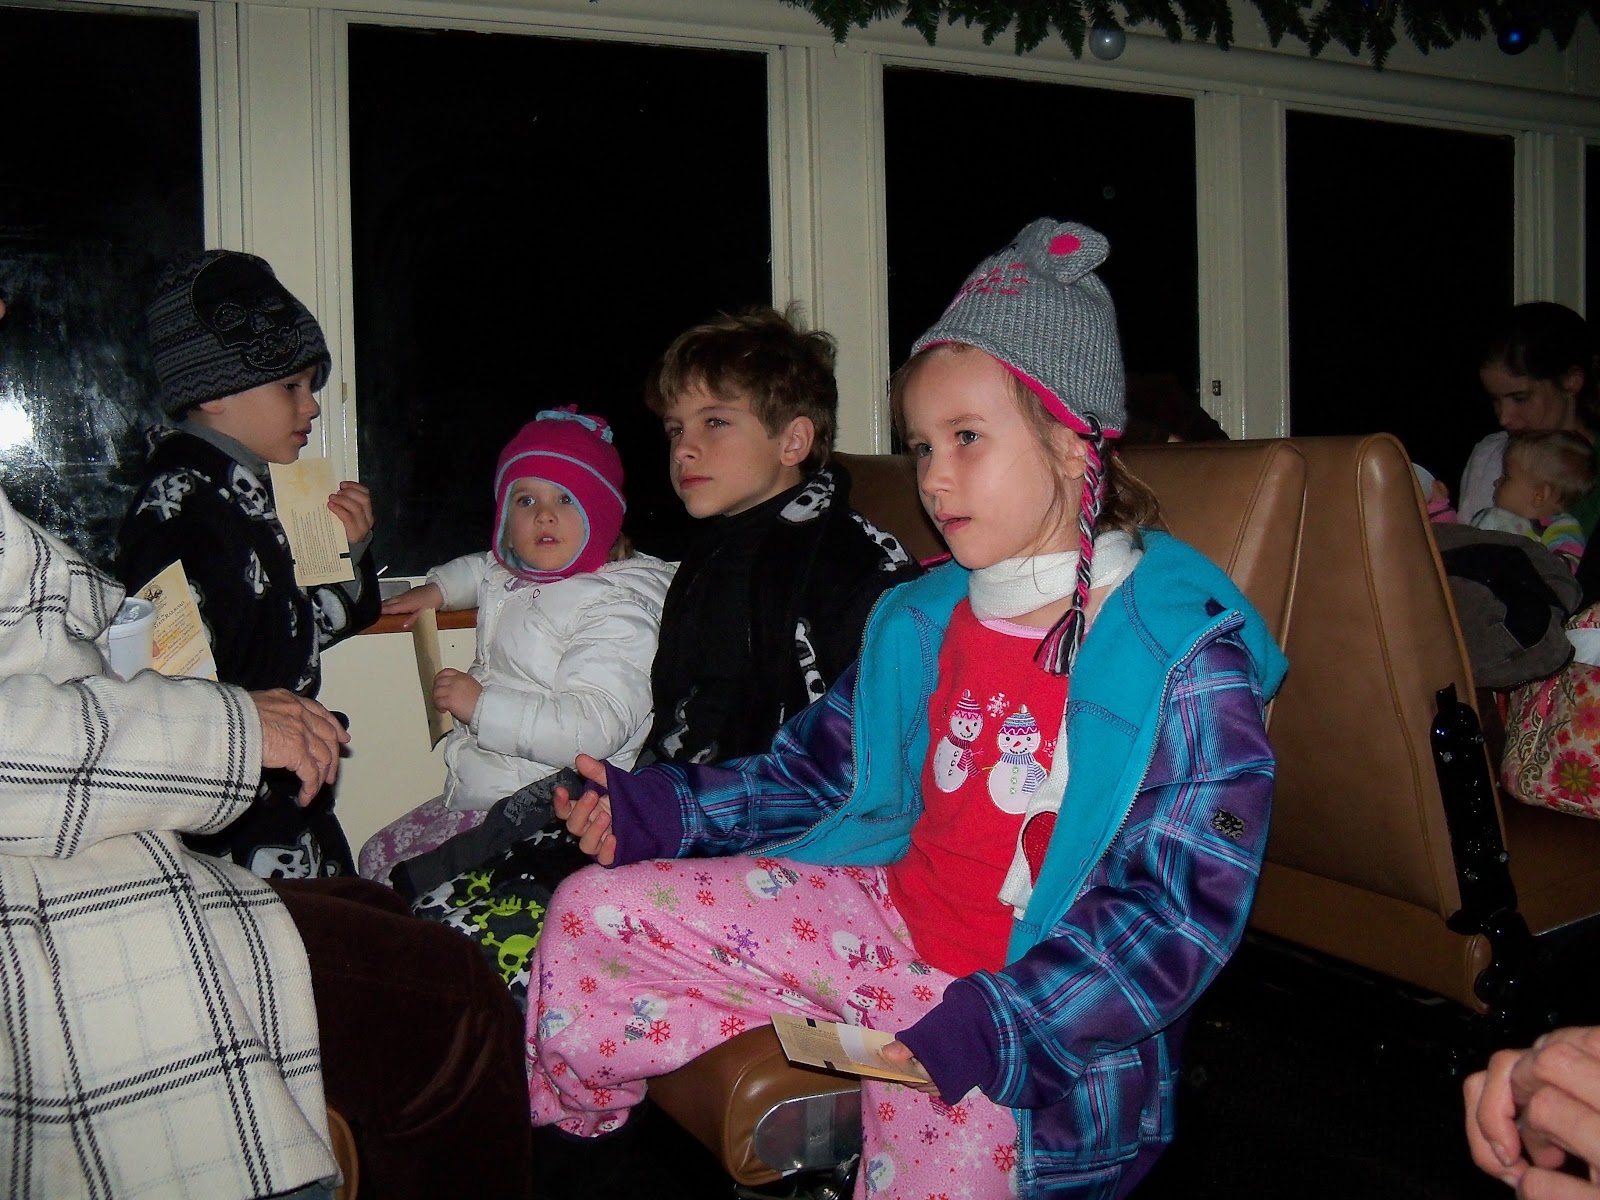 Polar Express Christmas Train 2011 - 115_0961.JPG